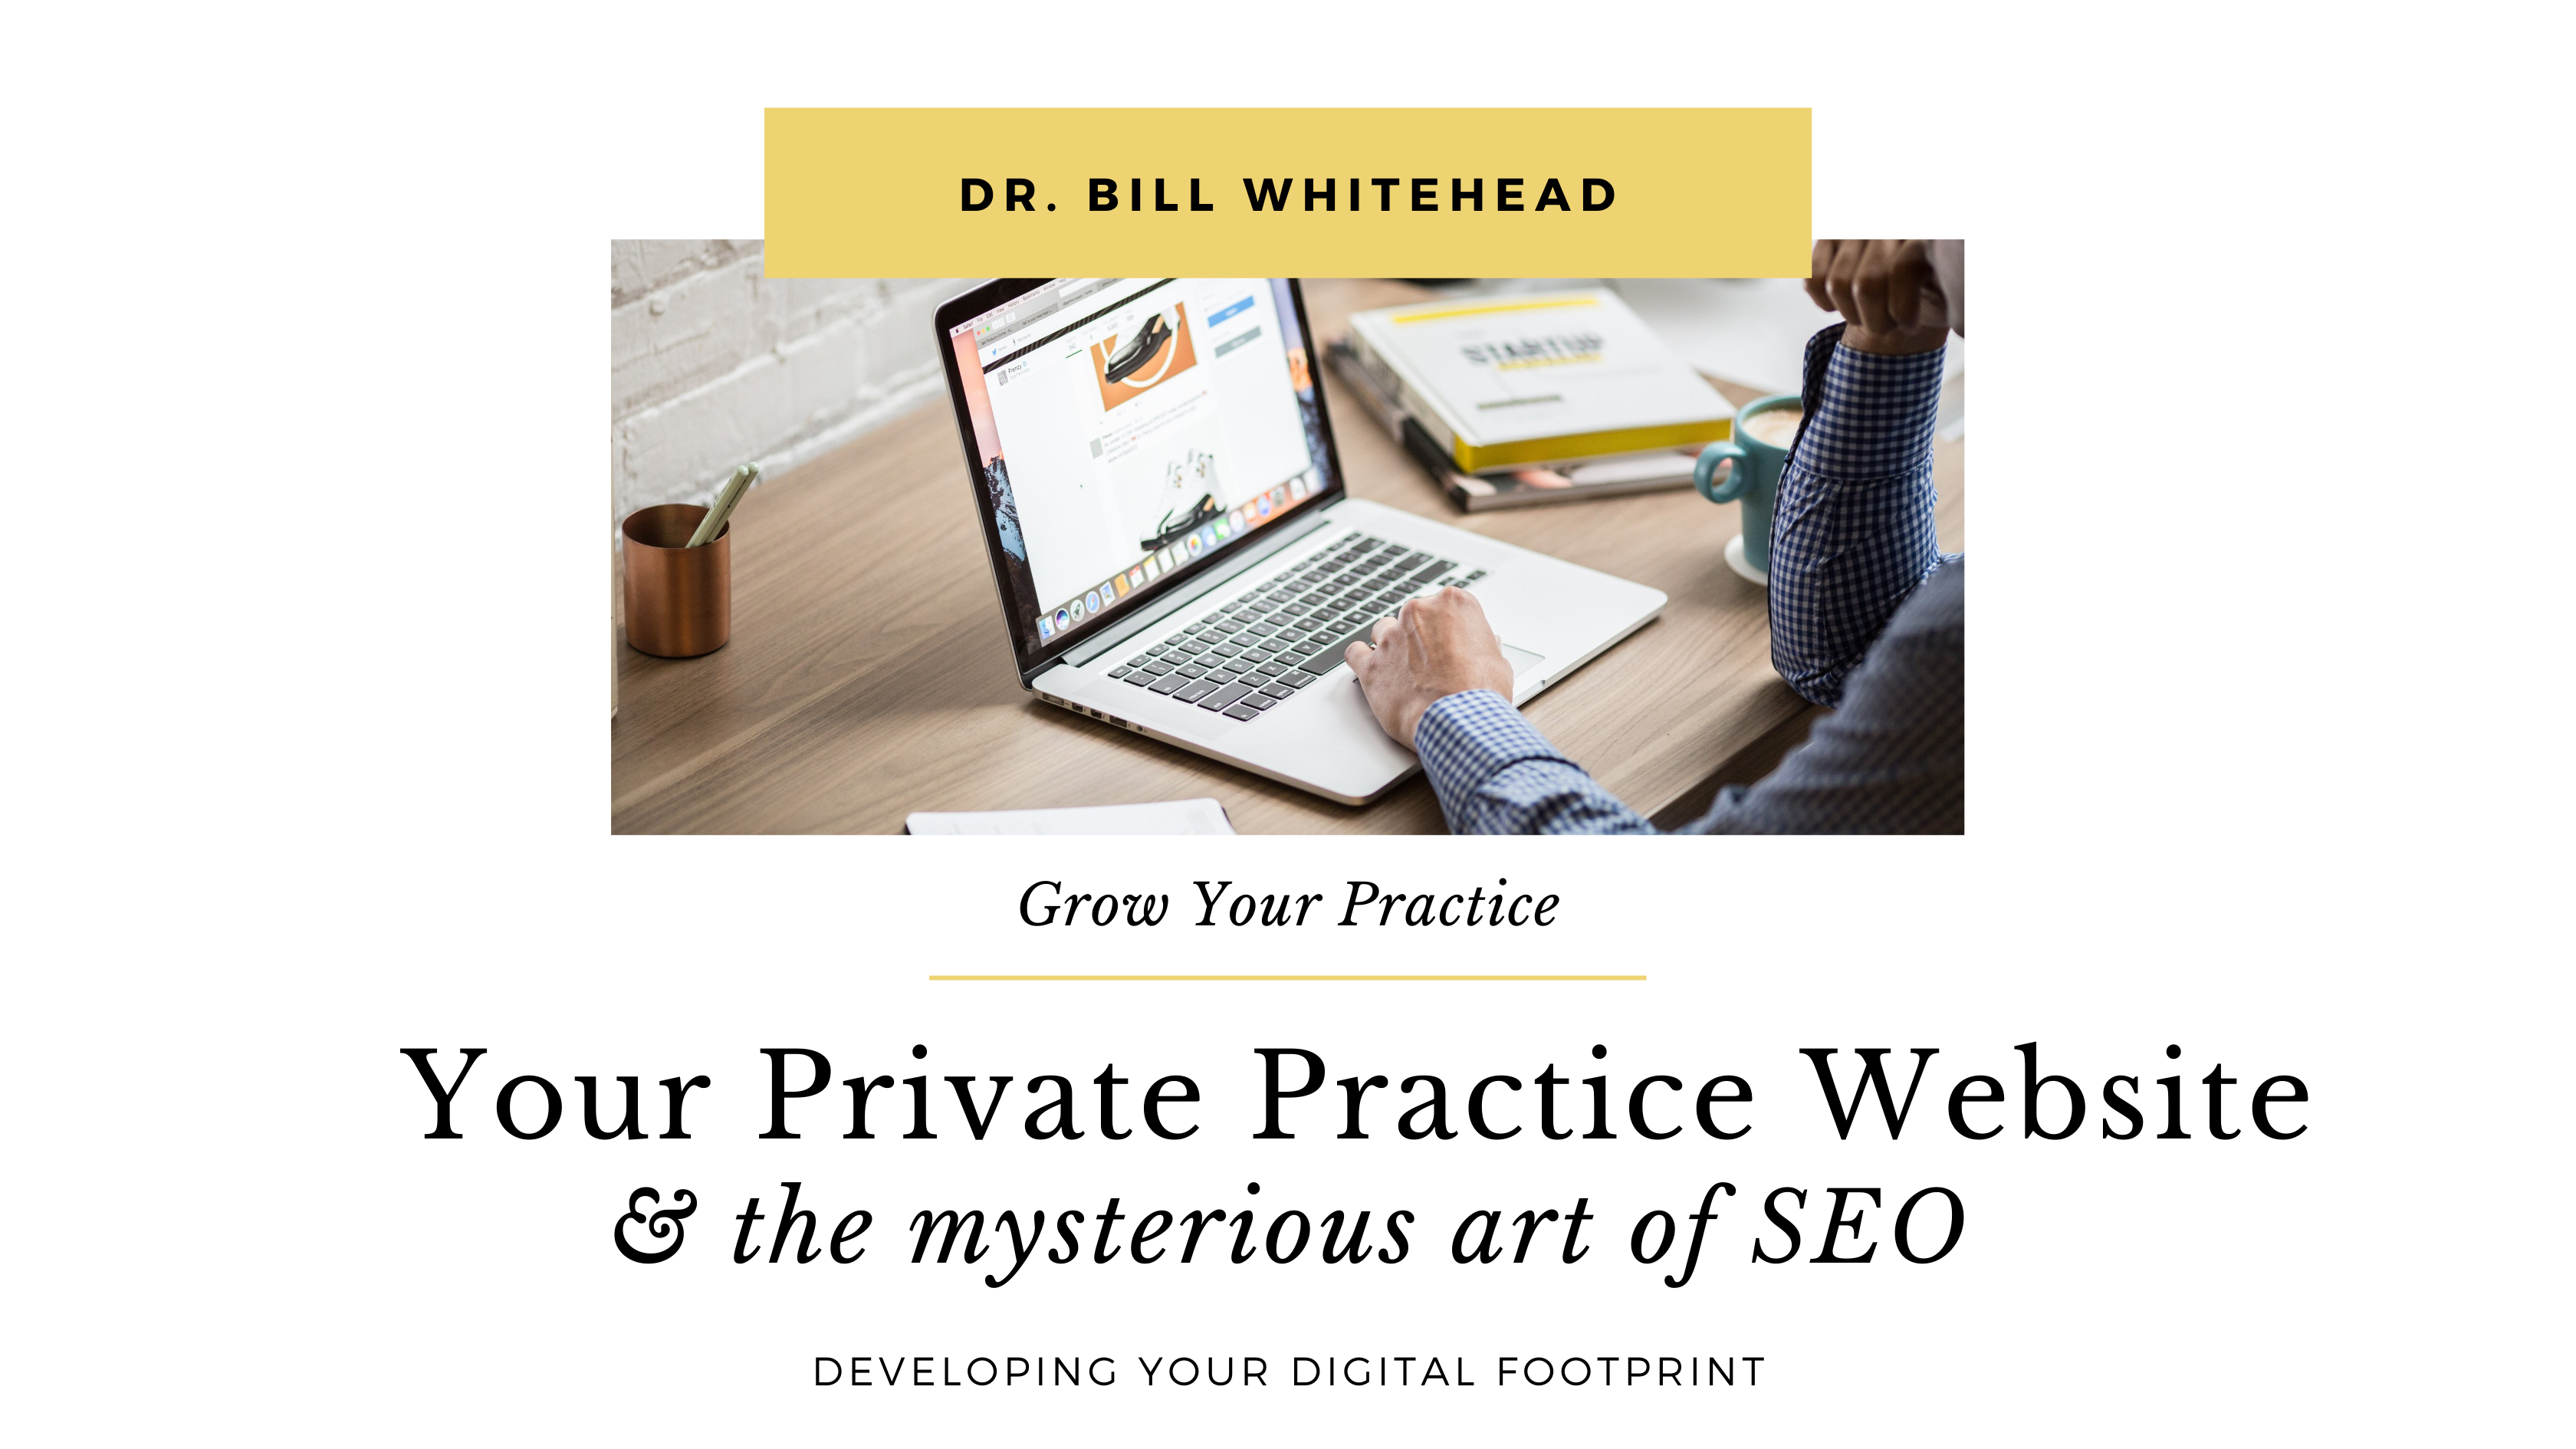 Your Private Practice Website